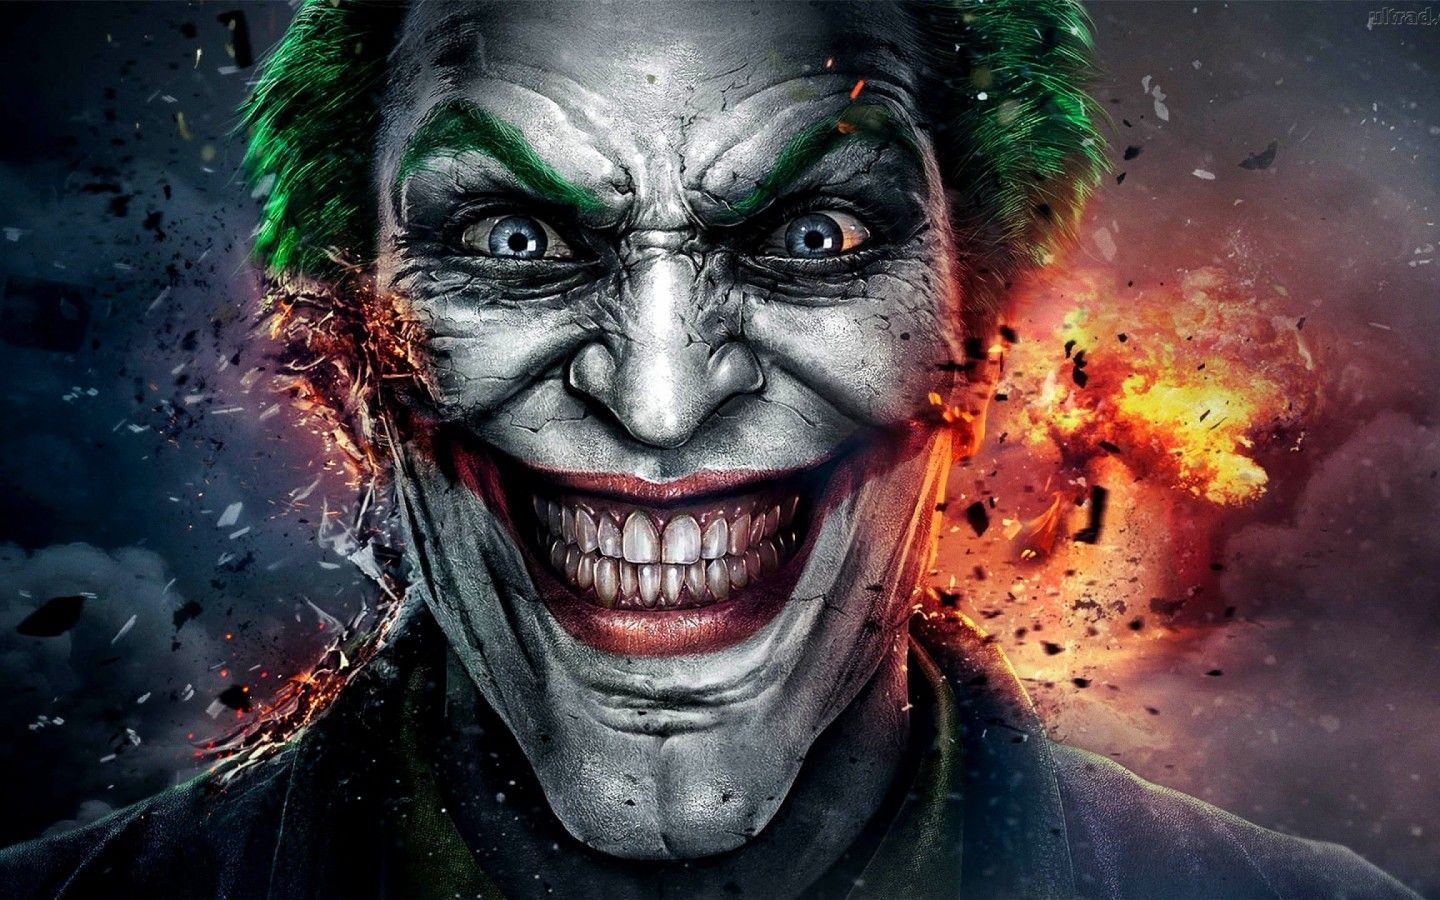 Awesome Joker Images Hd Download For Pc Images In 2020 Joker Hd Wallpaper Joker Poster Joker Images